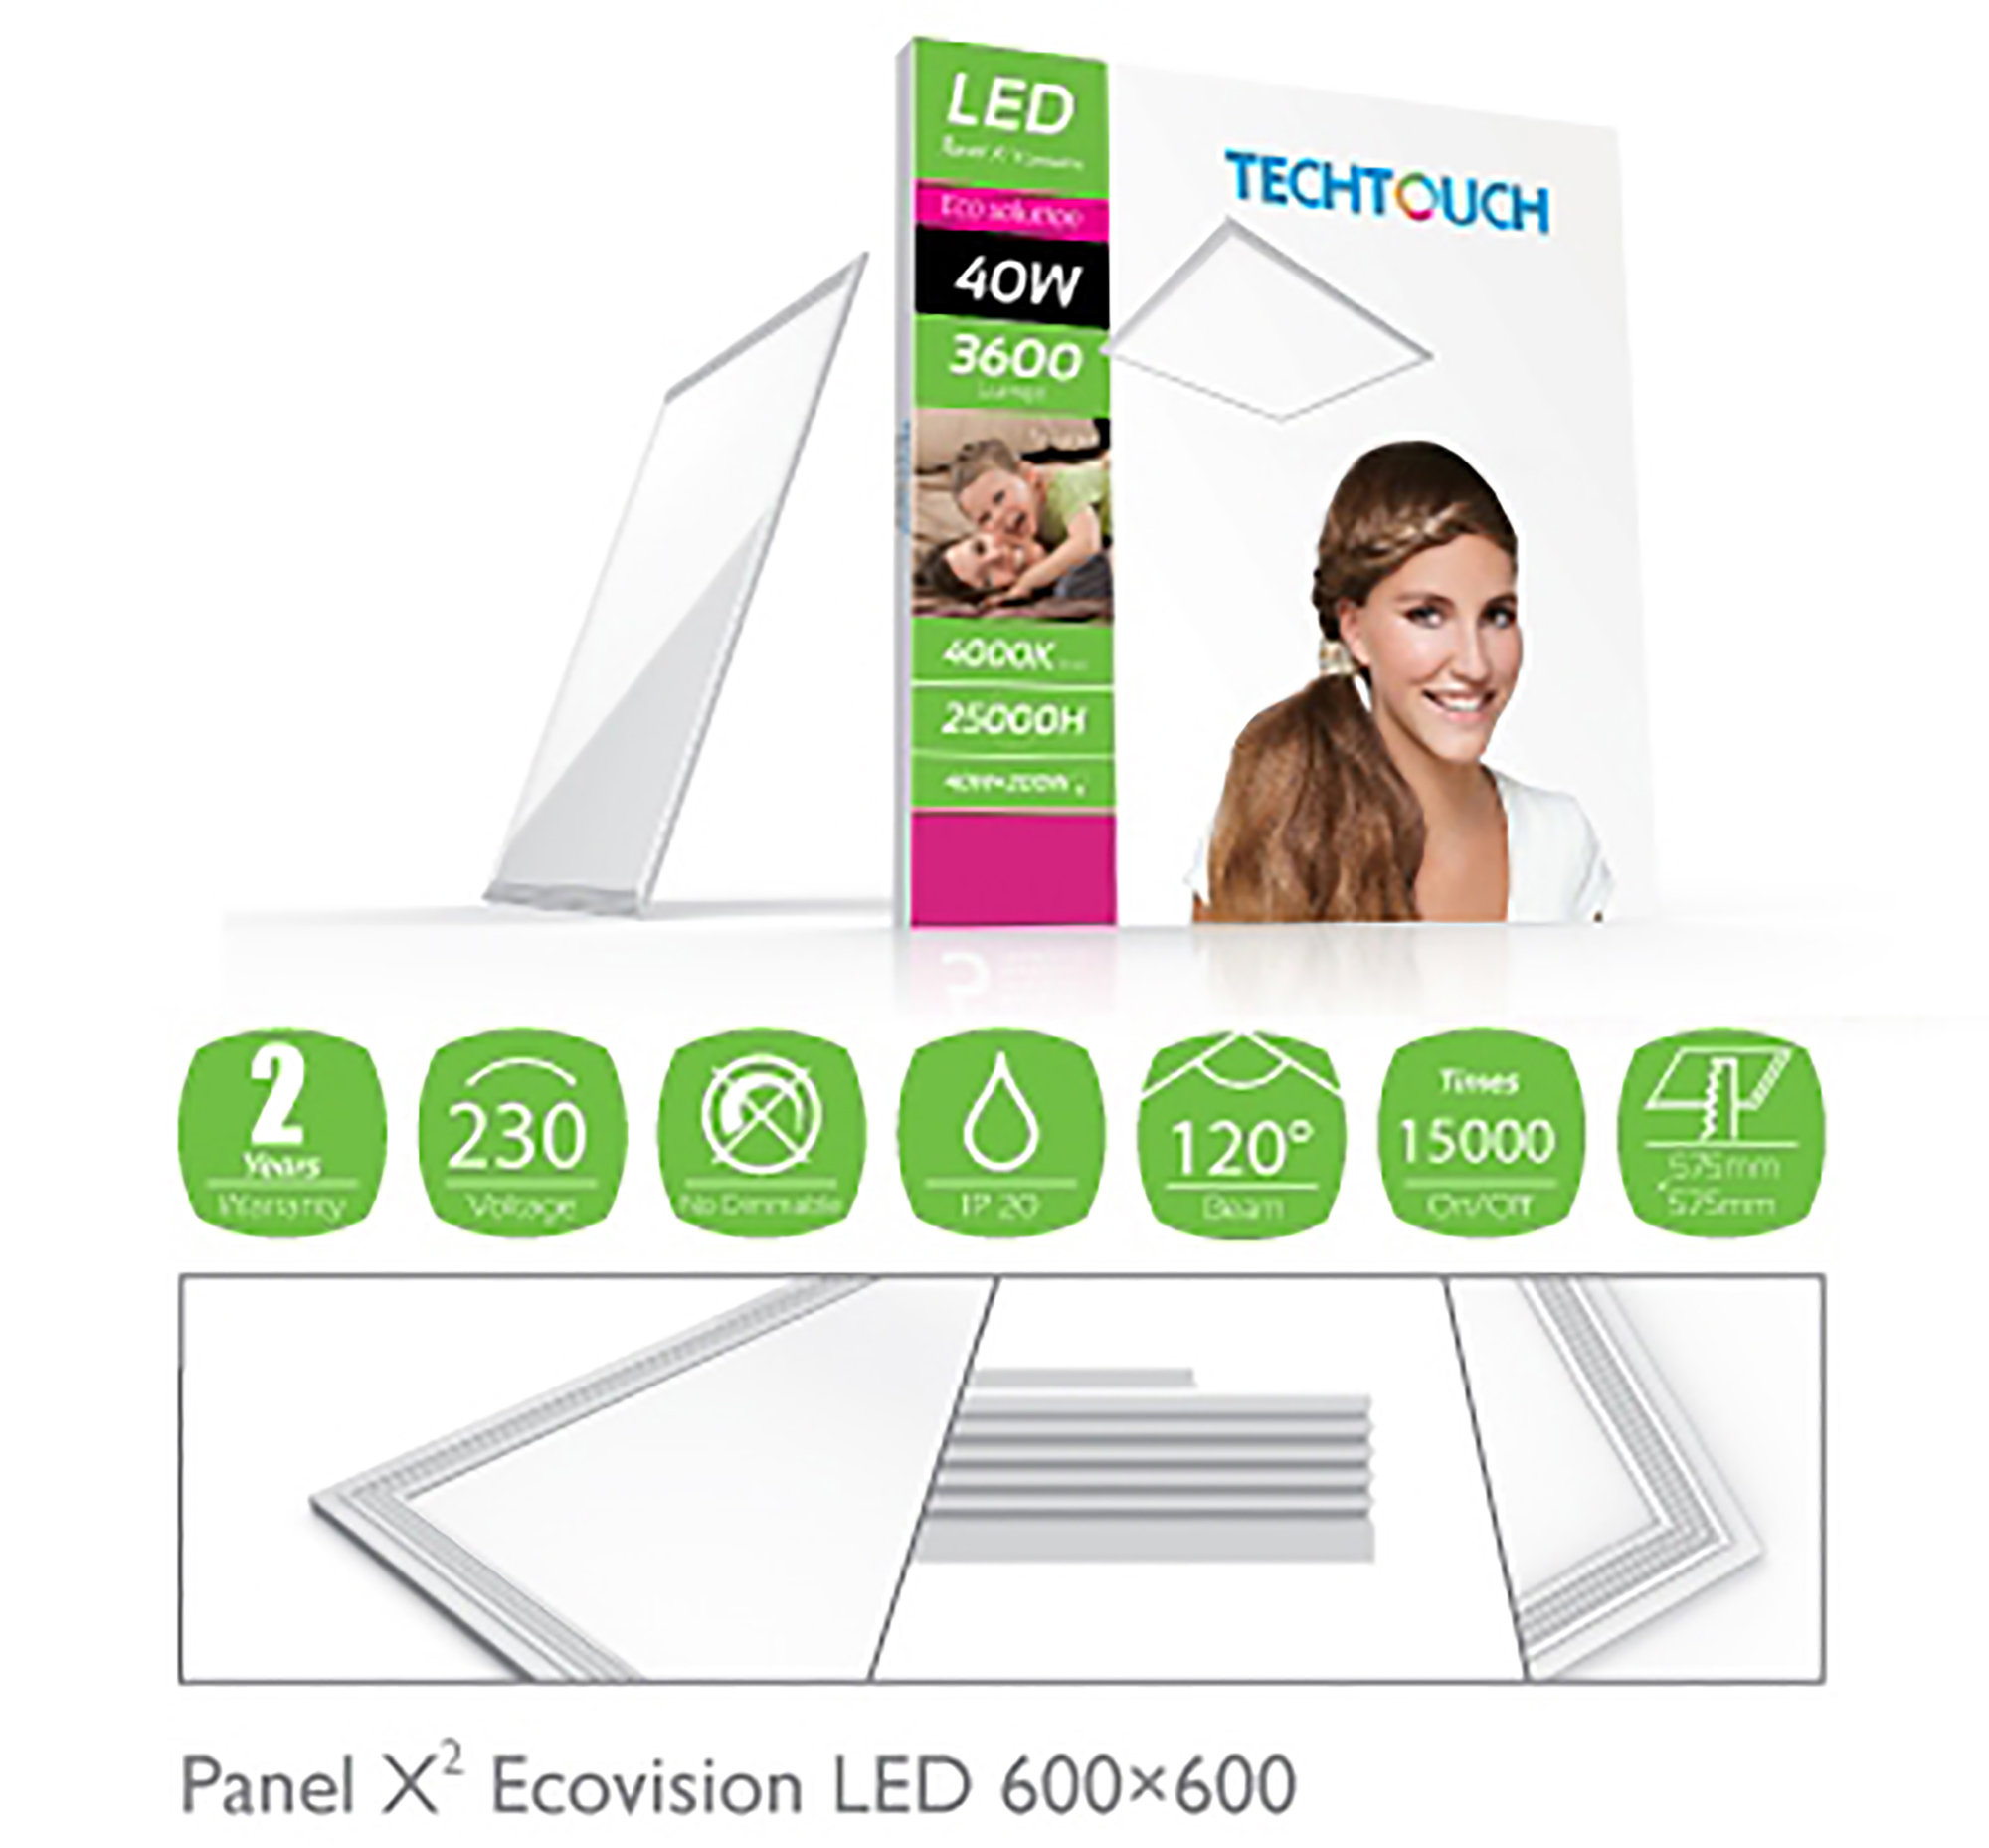 Panel X2 Ecovision Recessed Ceiling Luminaires Techtouch Square/Rectangular Recess Ceiling